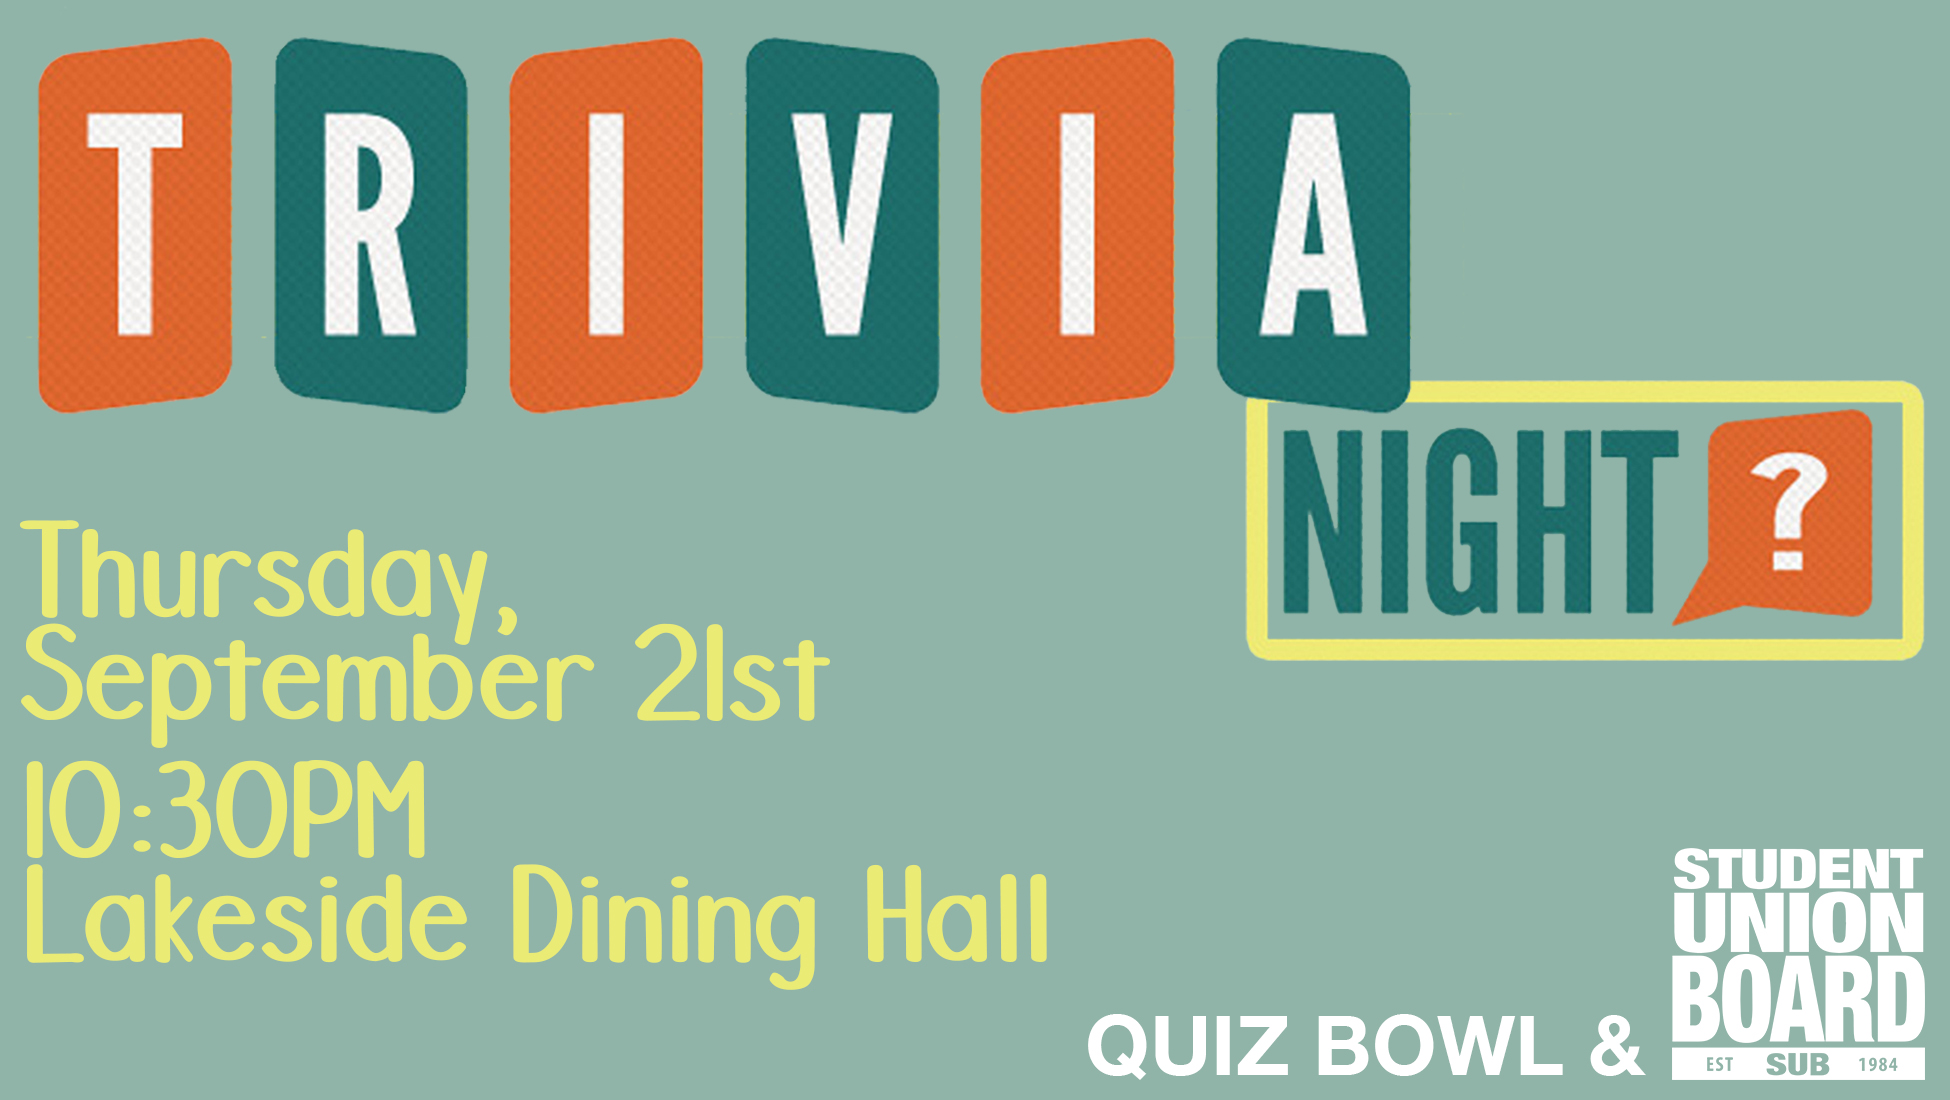 Learn fun trivia facts and win awesome prizes on September 21st in Lakeside!